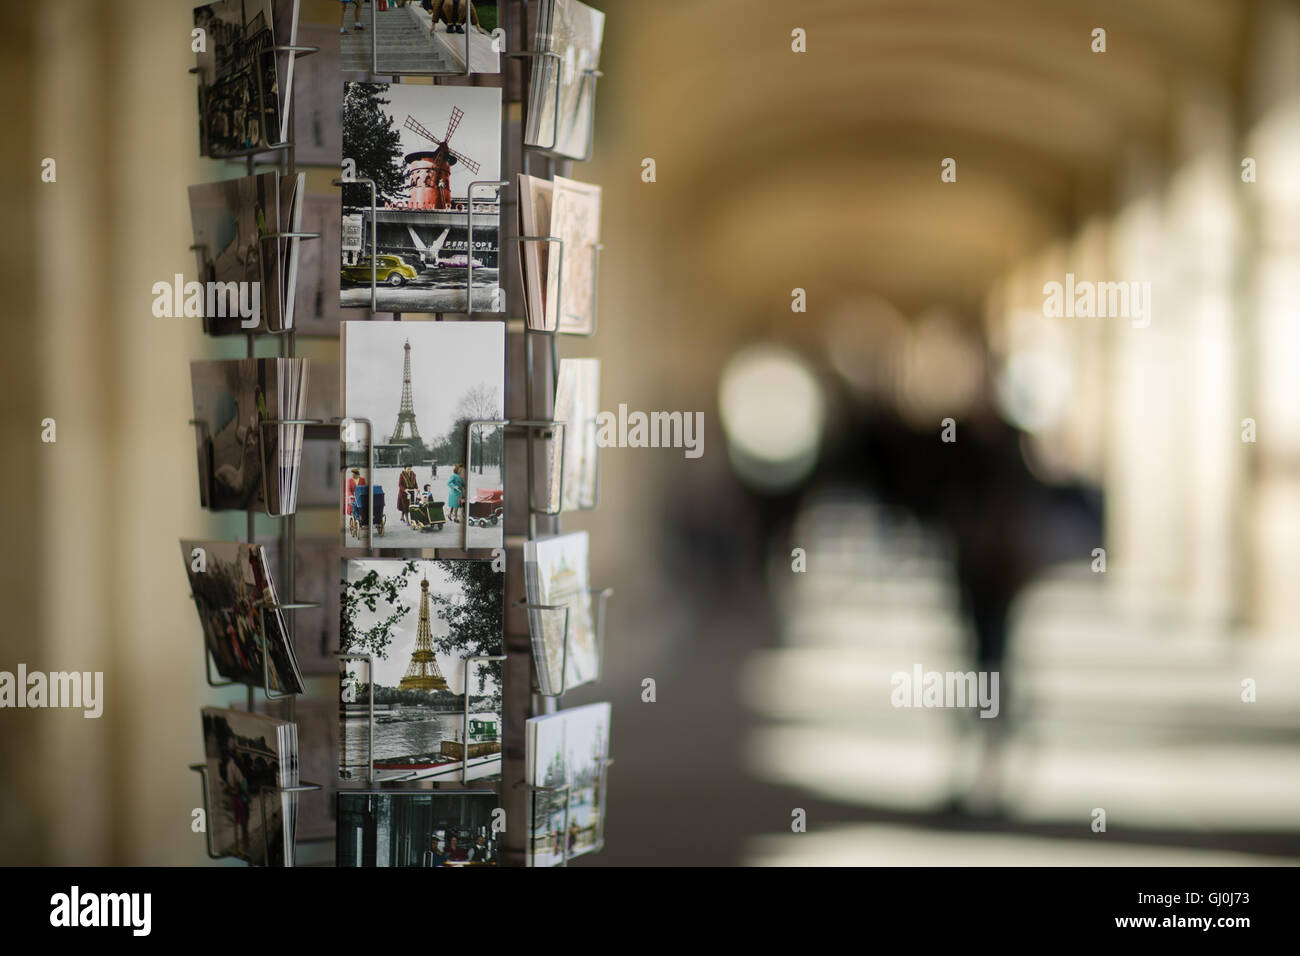 postcards, Place des Vosges, Paris, France - Stock Image